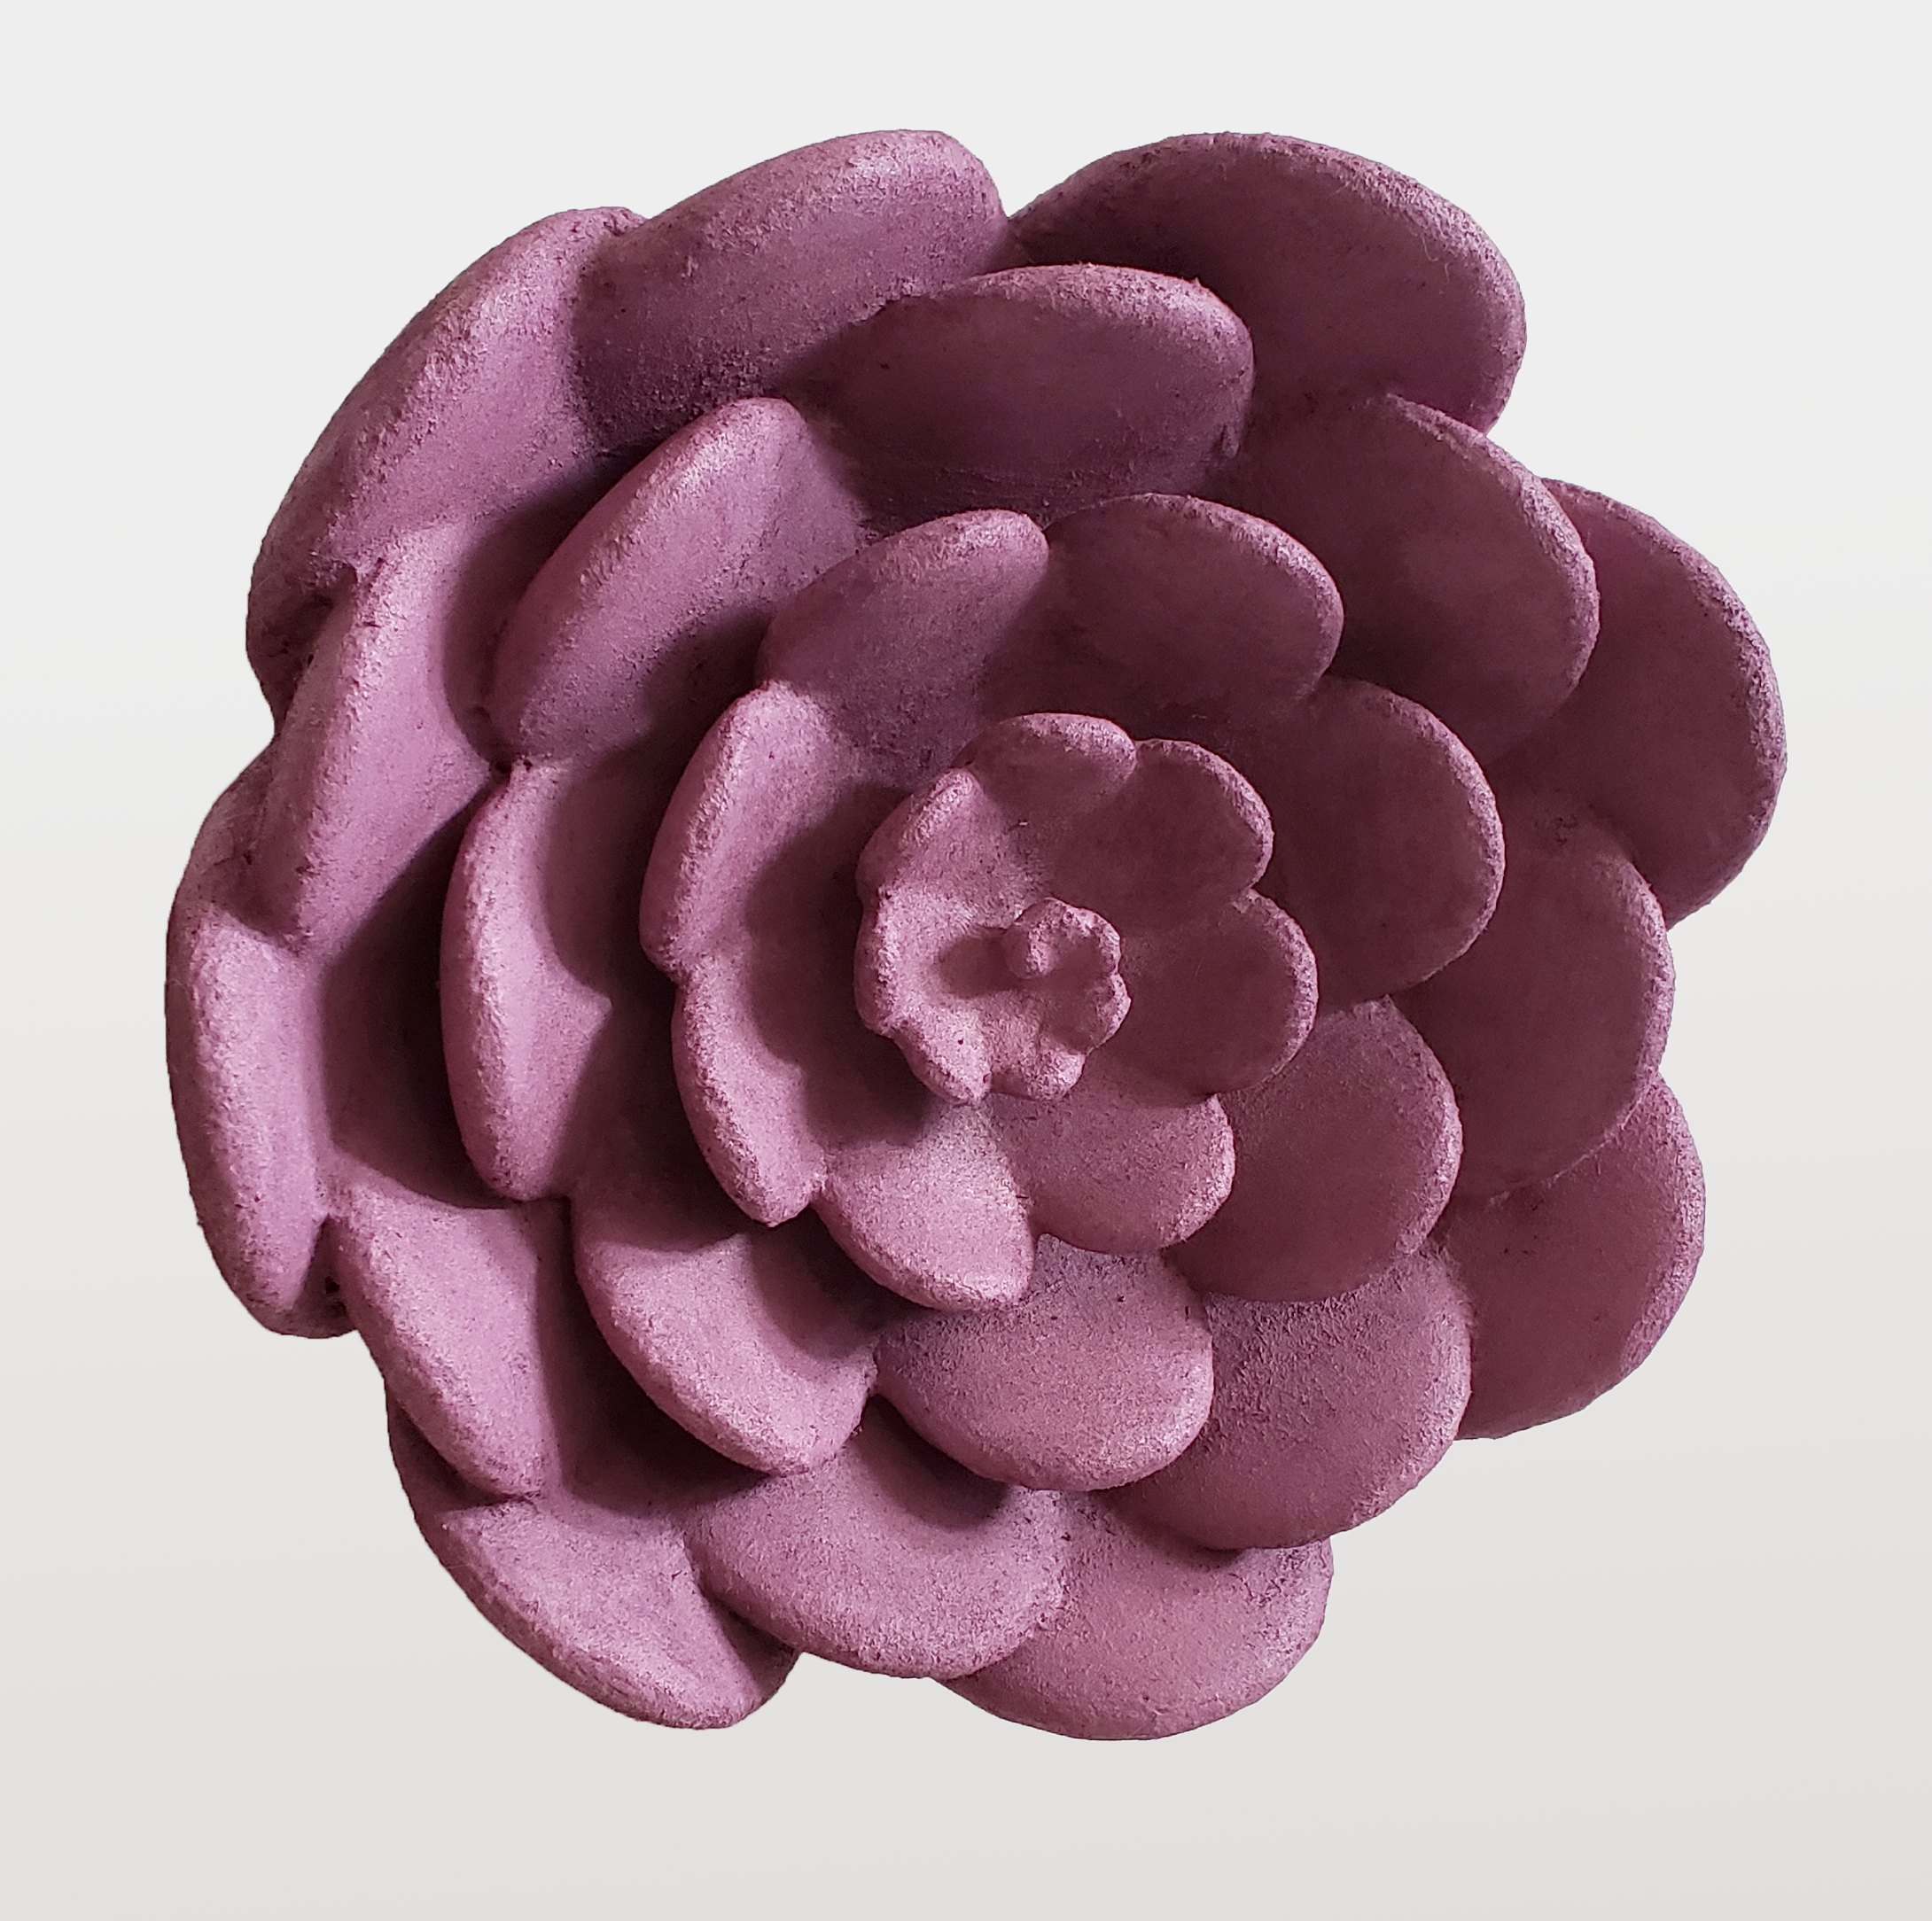 "PURPLE FLOWER LRG , 2019, Acrylique, flocage, PLA, 14 1/2"" x 5 1/2 "" x 5 1/2"""